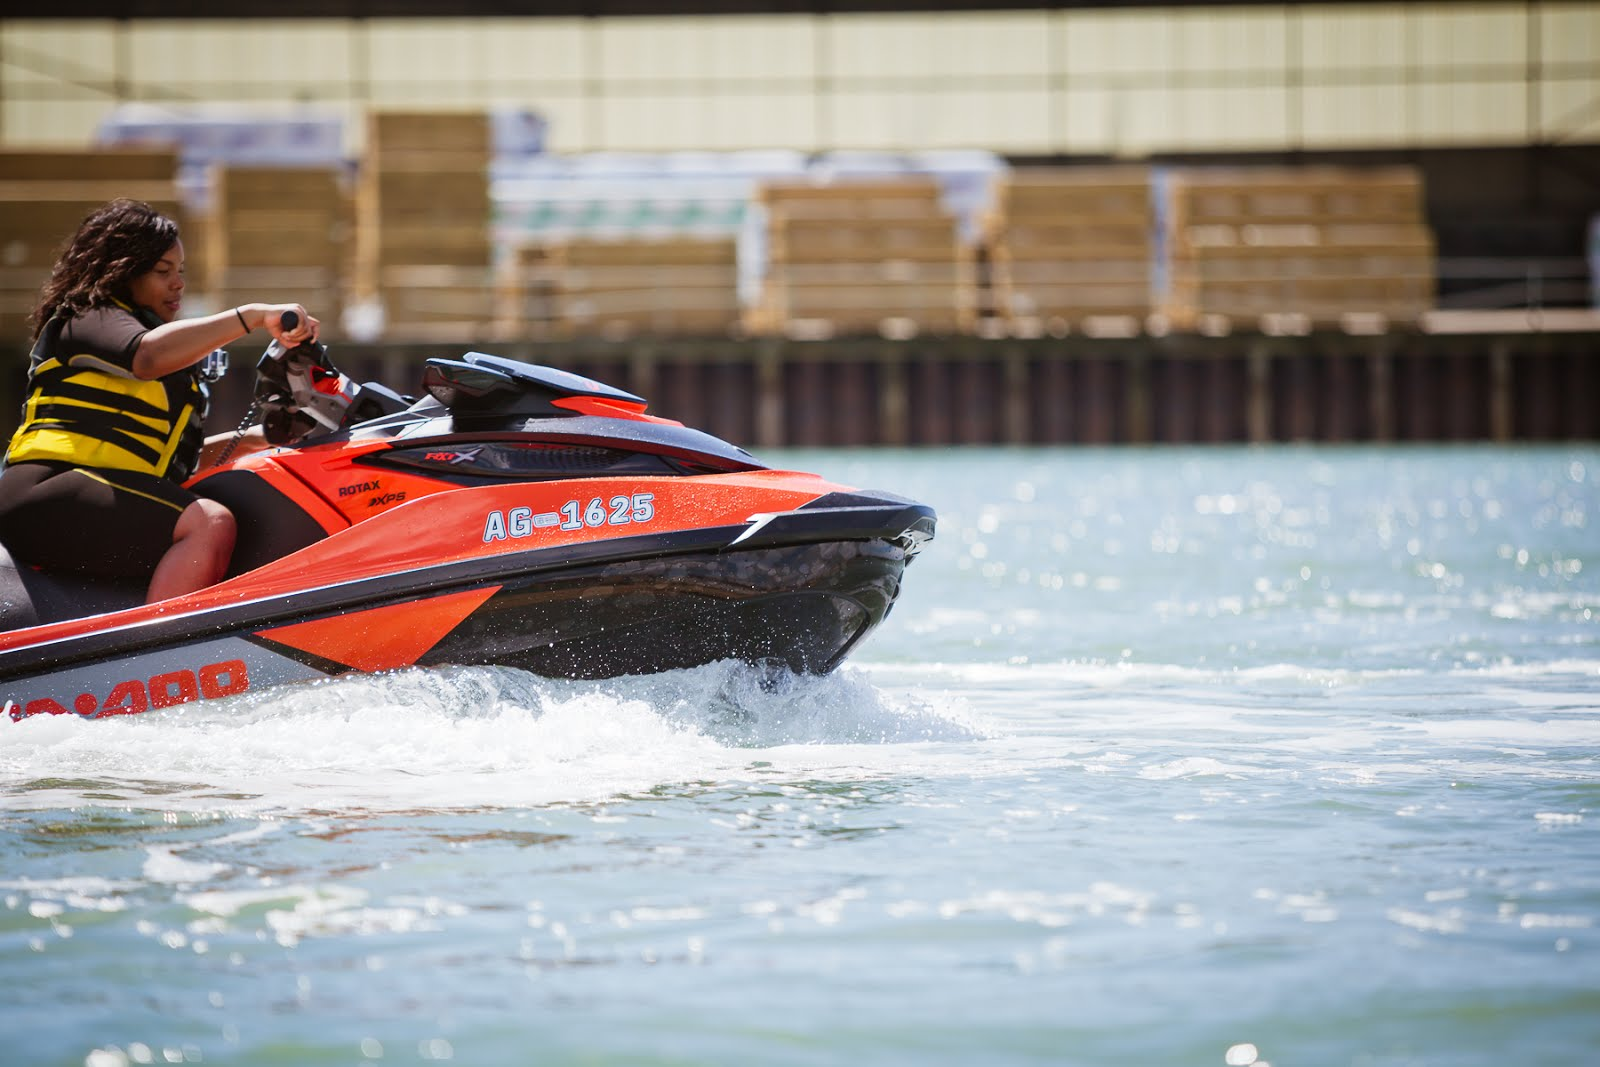 Watersport's just got it's sexy back! I #TestDrive the .@BRPSeaDoo @BRP_UK